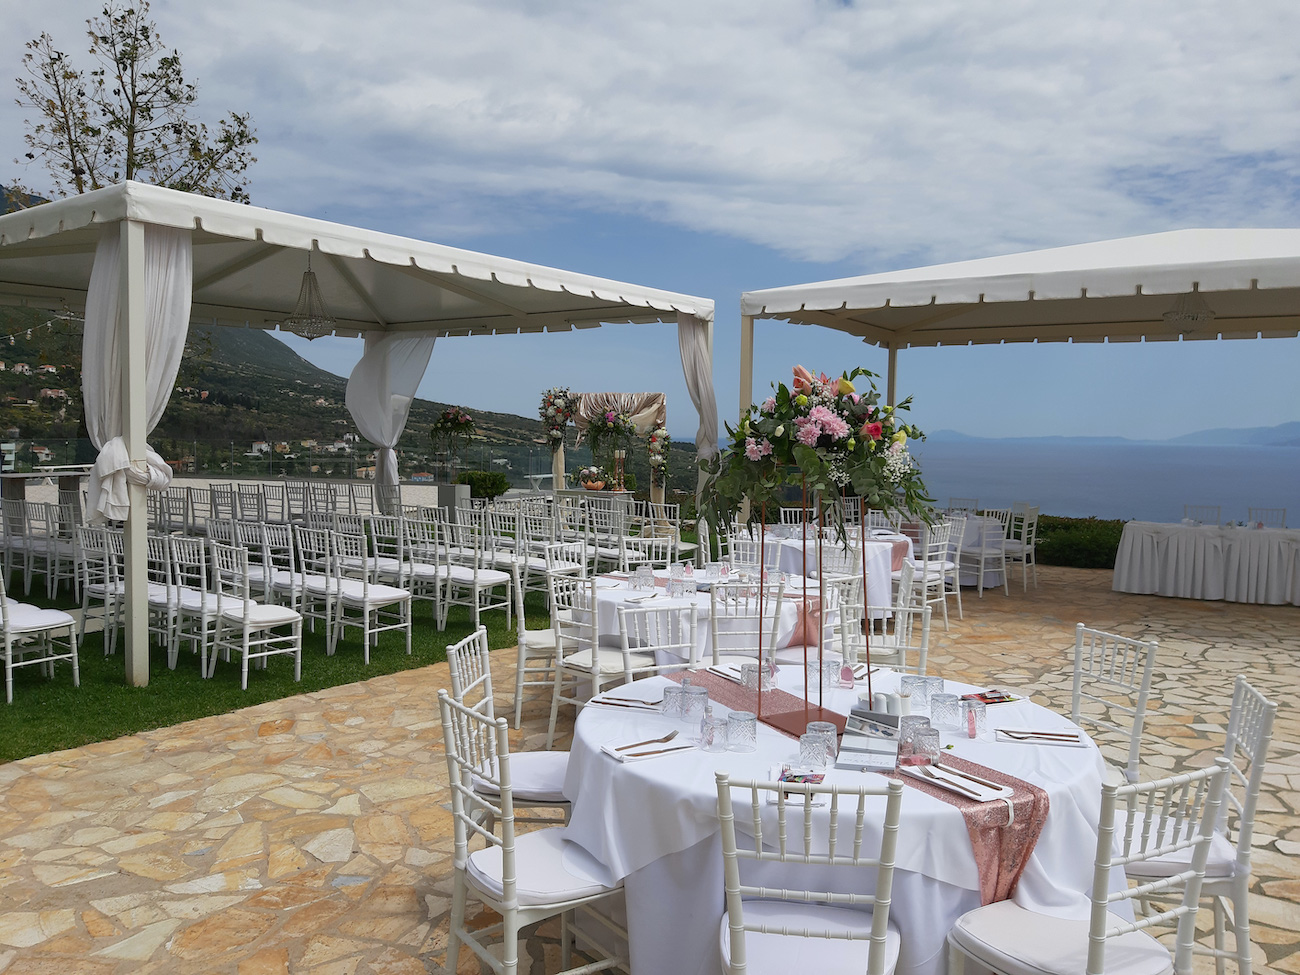 images/kefalonia_weddings/kefalonia_wedding_venues/kefalonia_wedding_planners/reception_venu_kefalonia/kefalonia_wedding_receptions_005.jpg